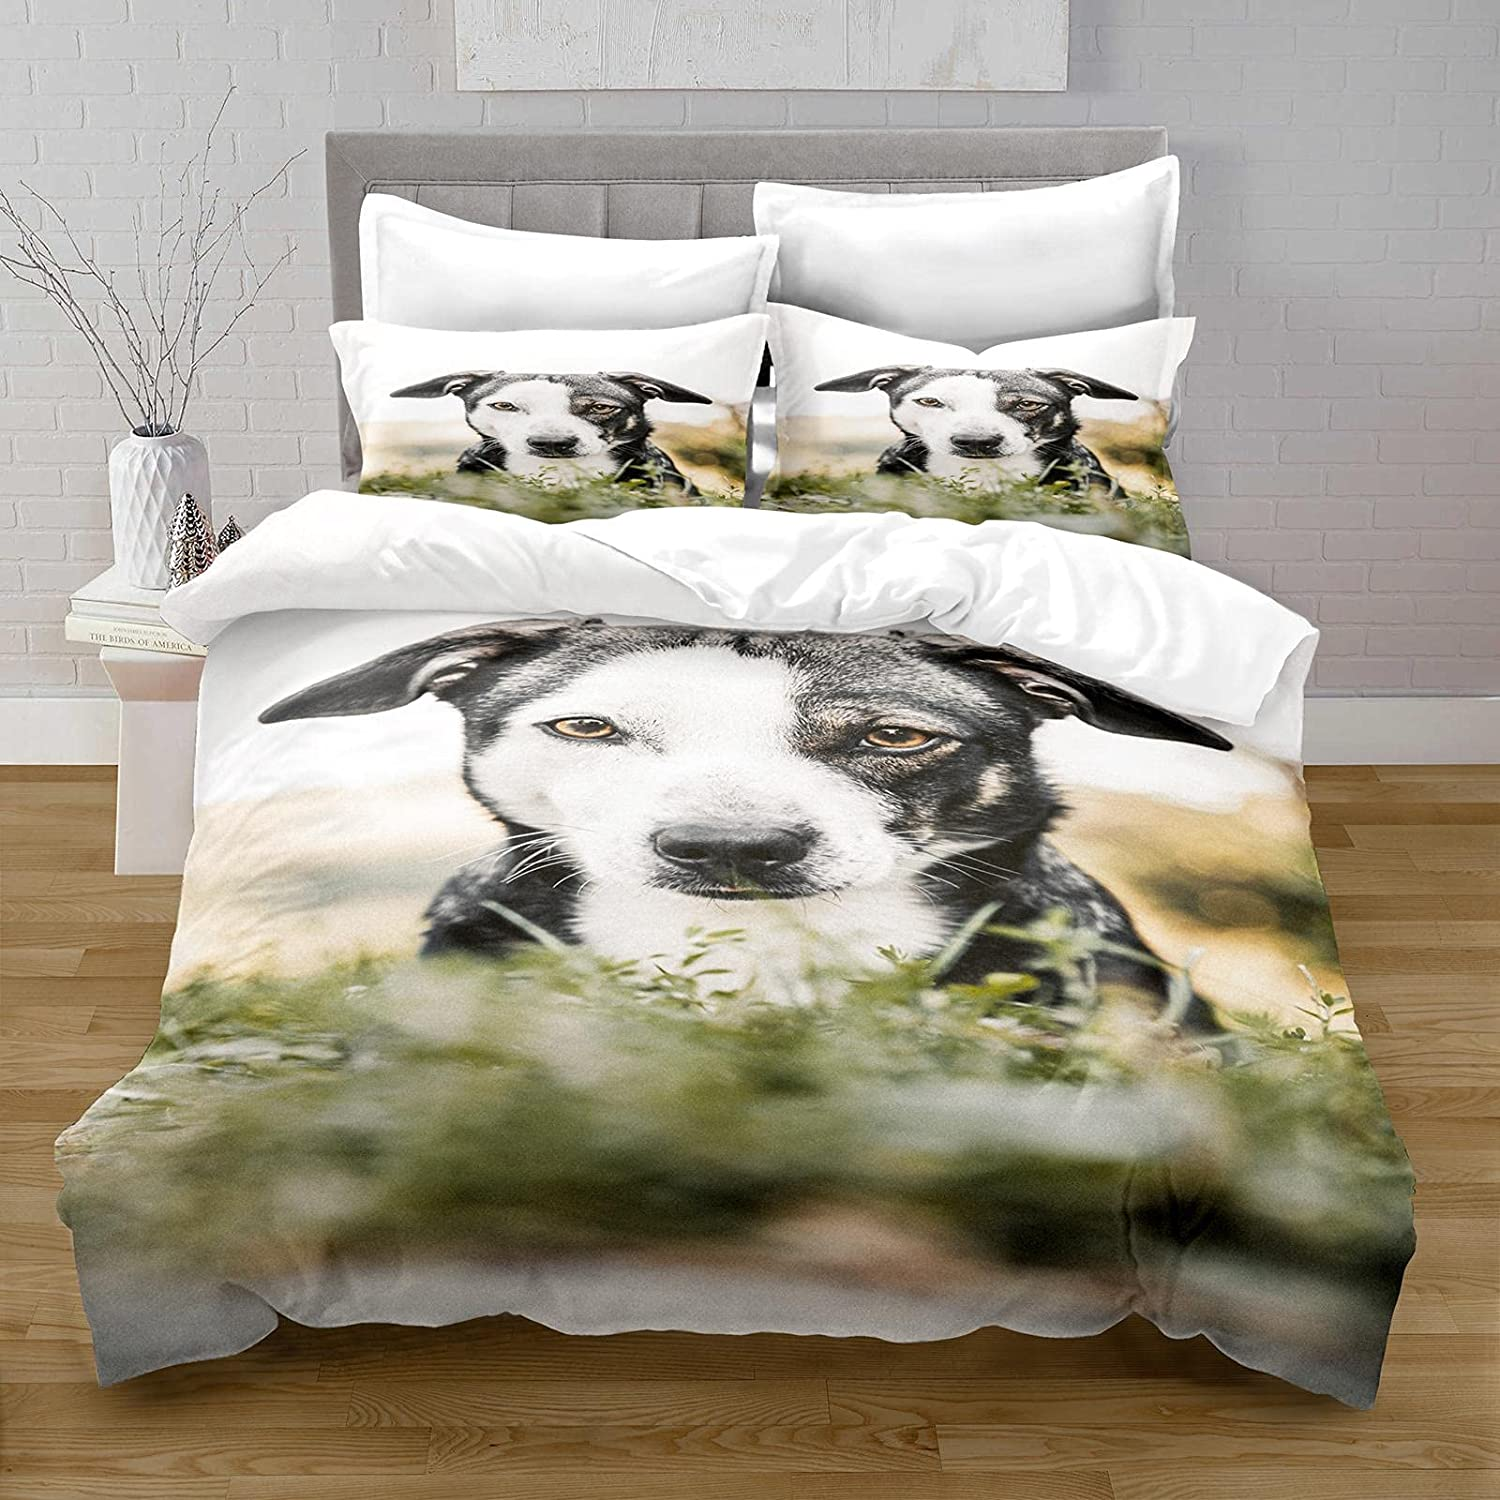 HQHM Duvet Cover King 3 Pieces Very popular! Stereo Animal Puppy Grass 4 years warranty I 61X79